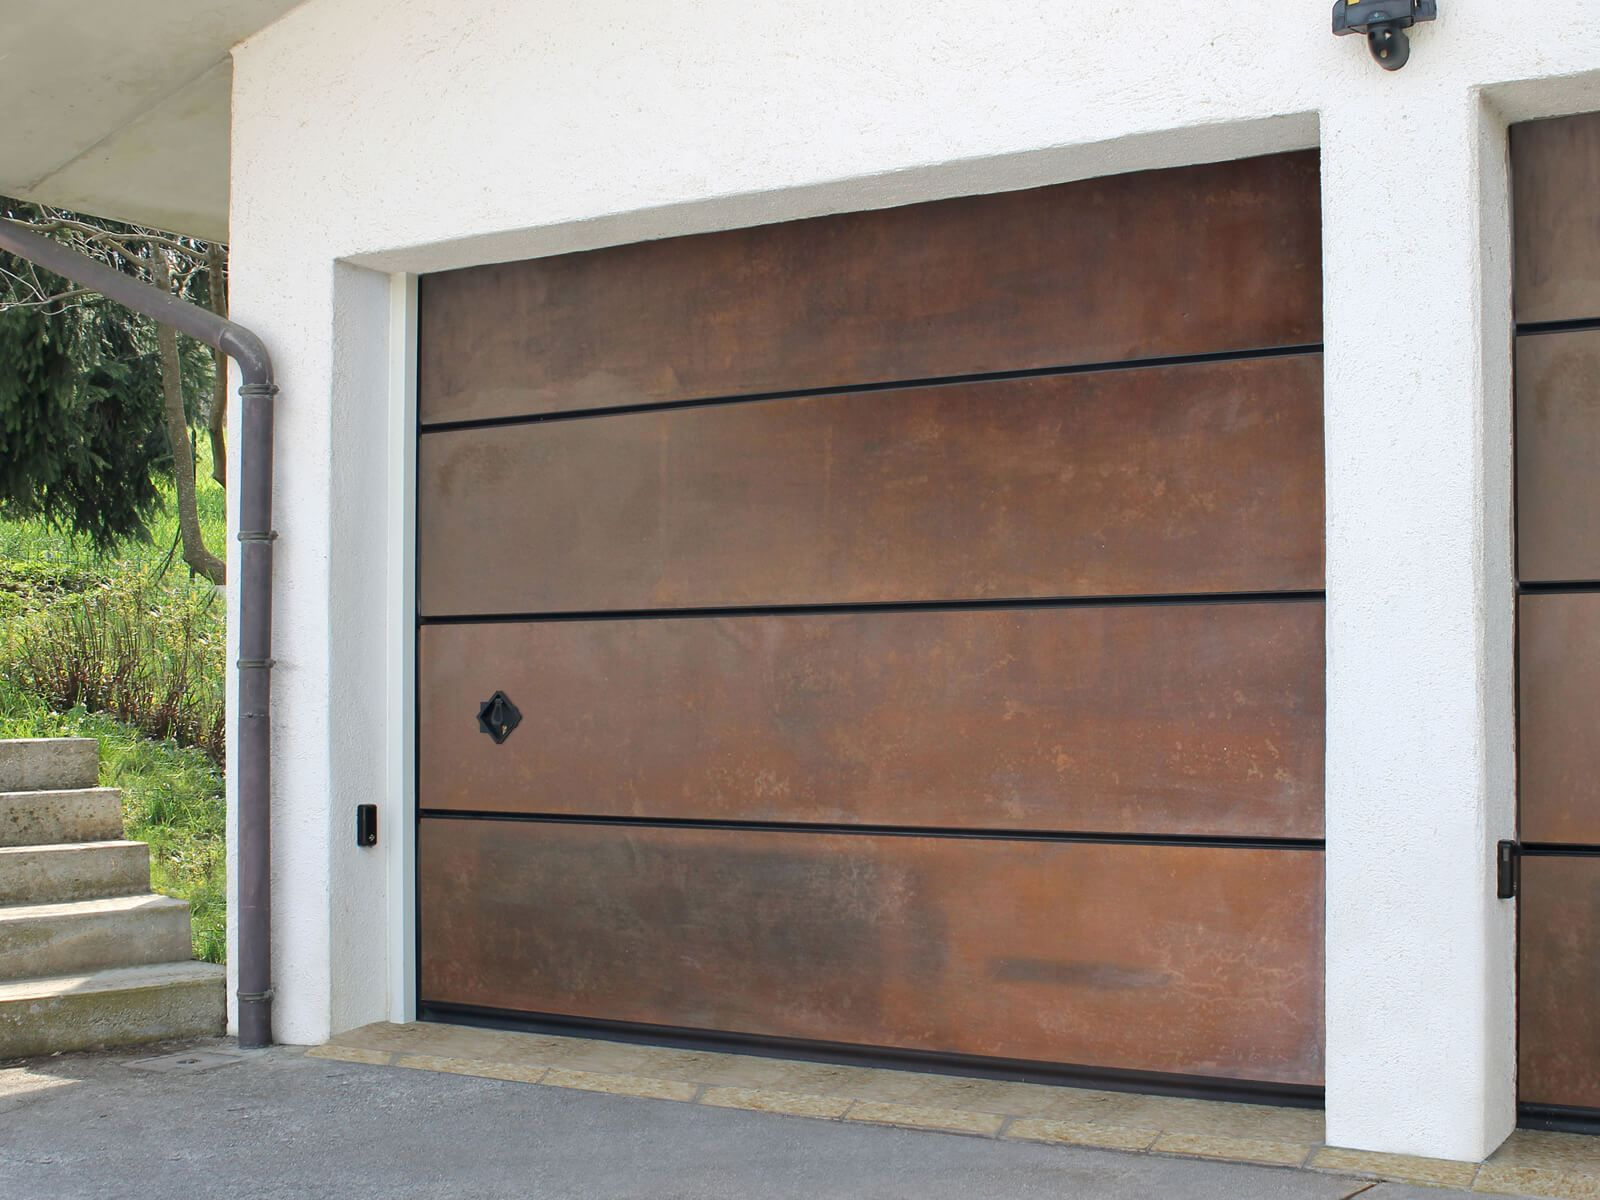 Le Perle Designer Overhead Garage Doors By Breda Are One Of A Kind Custom Garage Doors Whether It Is A Ma Garage Doors Garage Door Company Modern Garage Doors